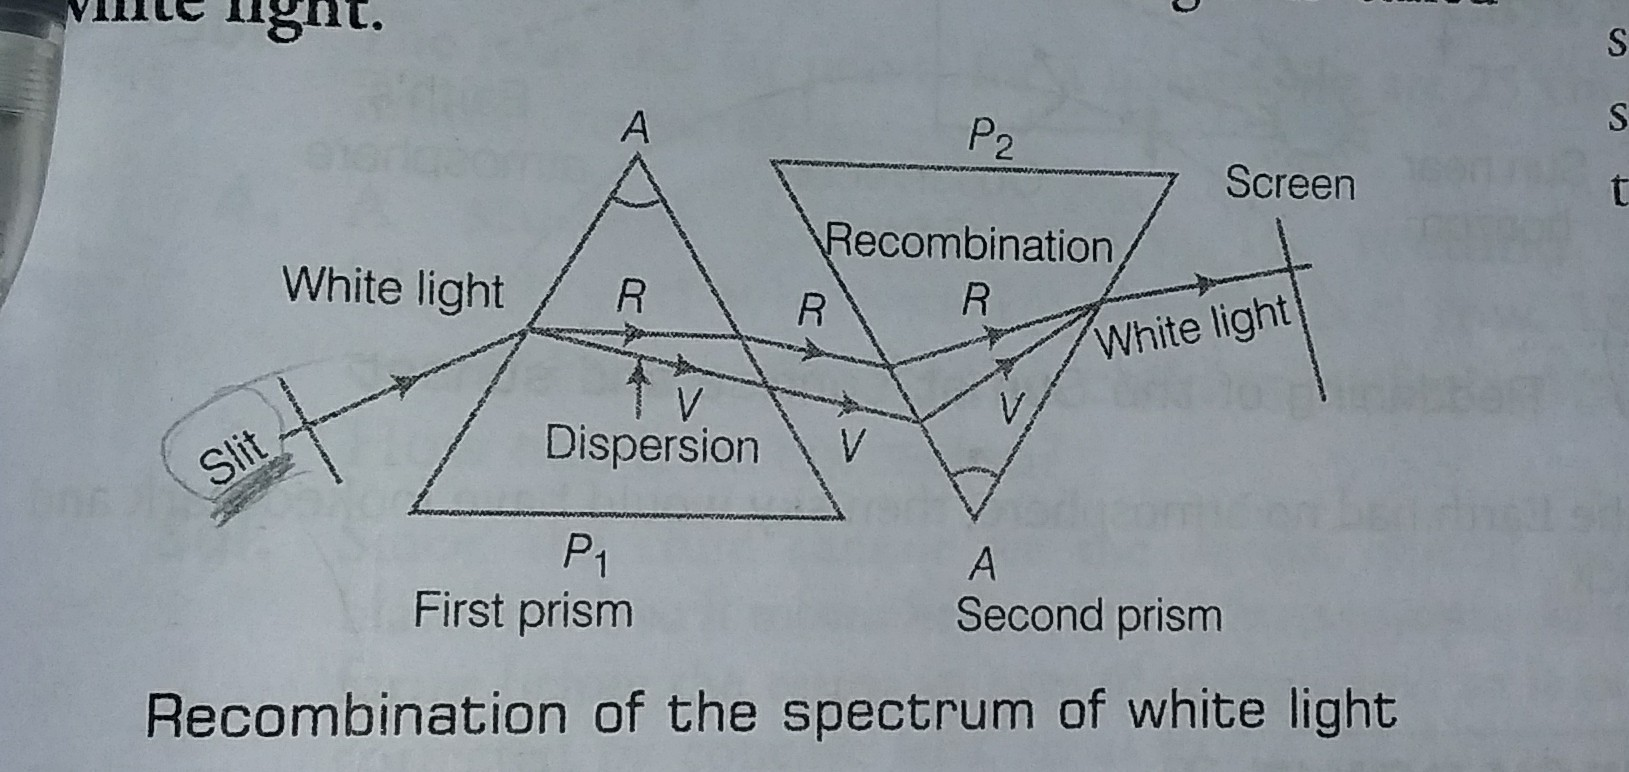 what do mean by slit in the above mentioned diagram - Brainly.in